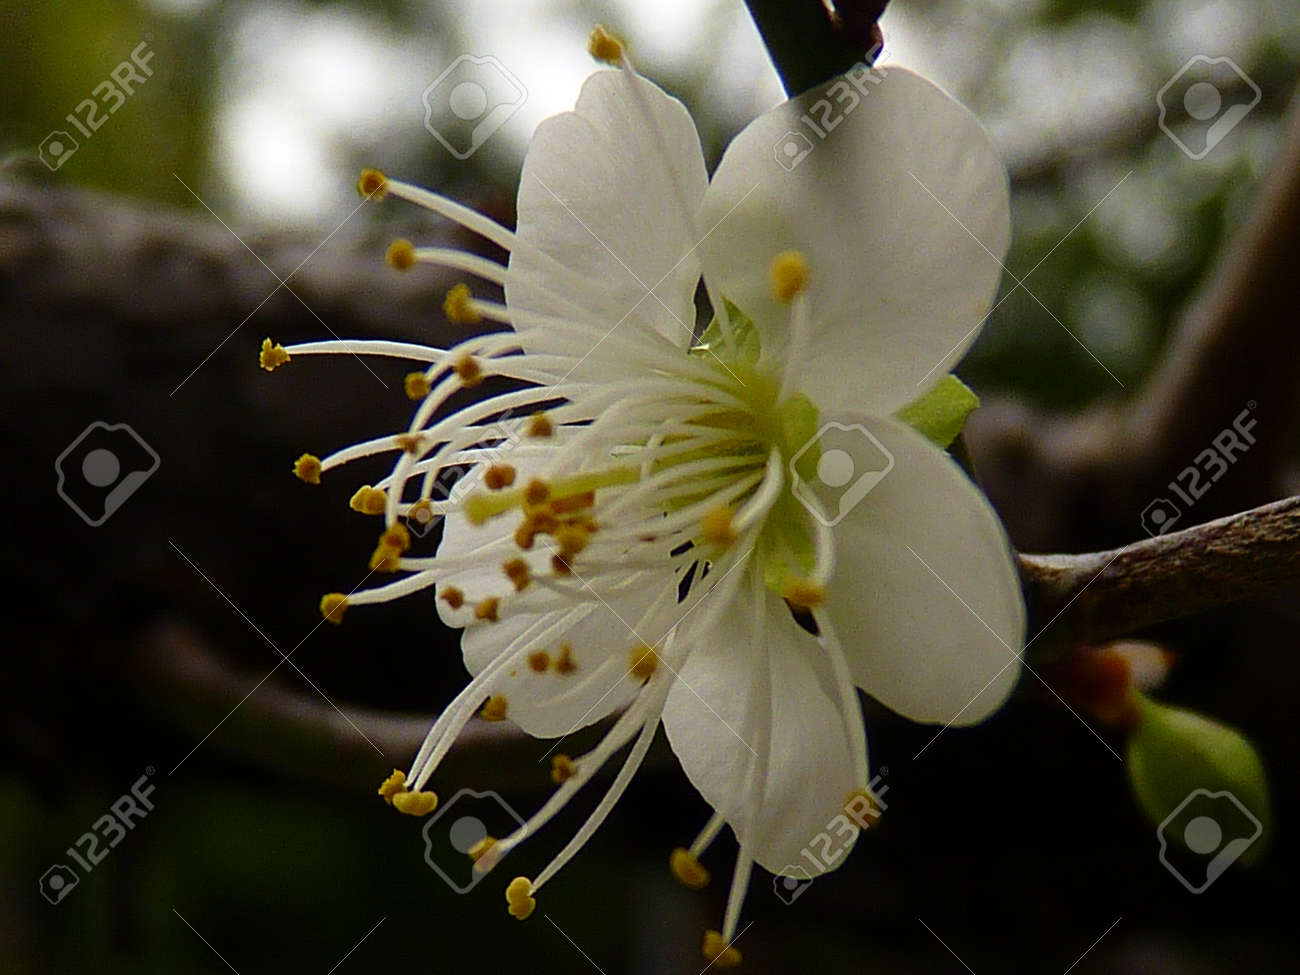 White plum flower stock photo picture and royalty free image image stock photo white plum flower mightylinksfo Choice Image